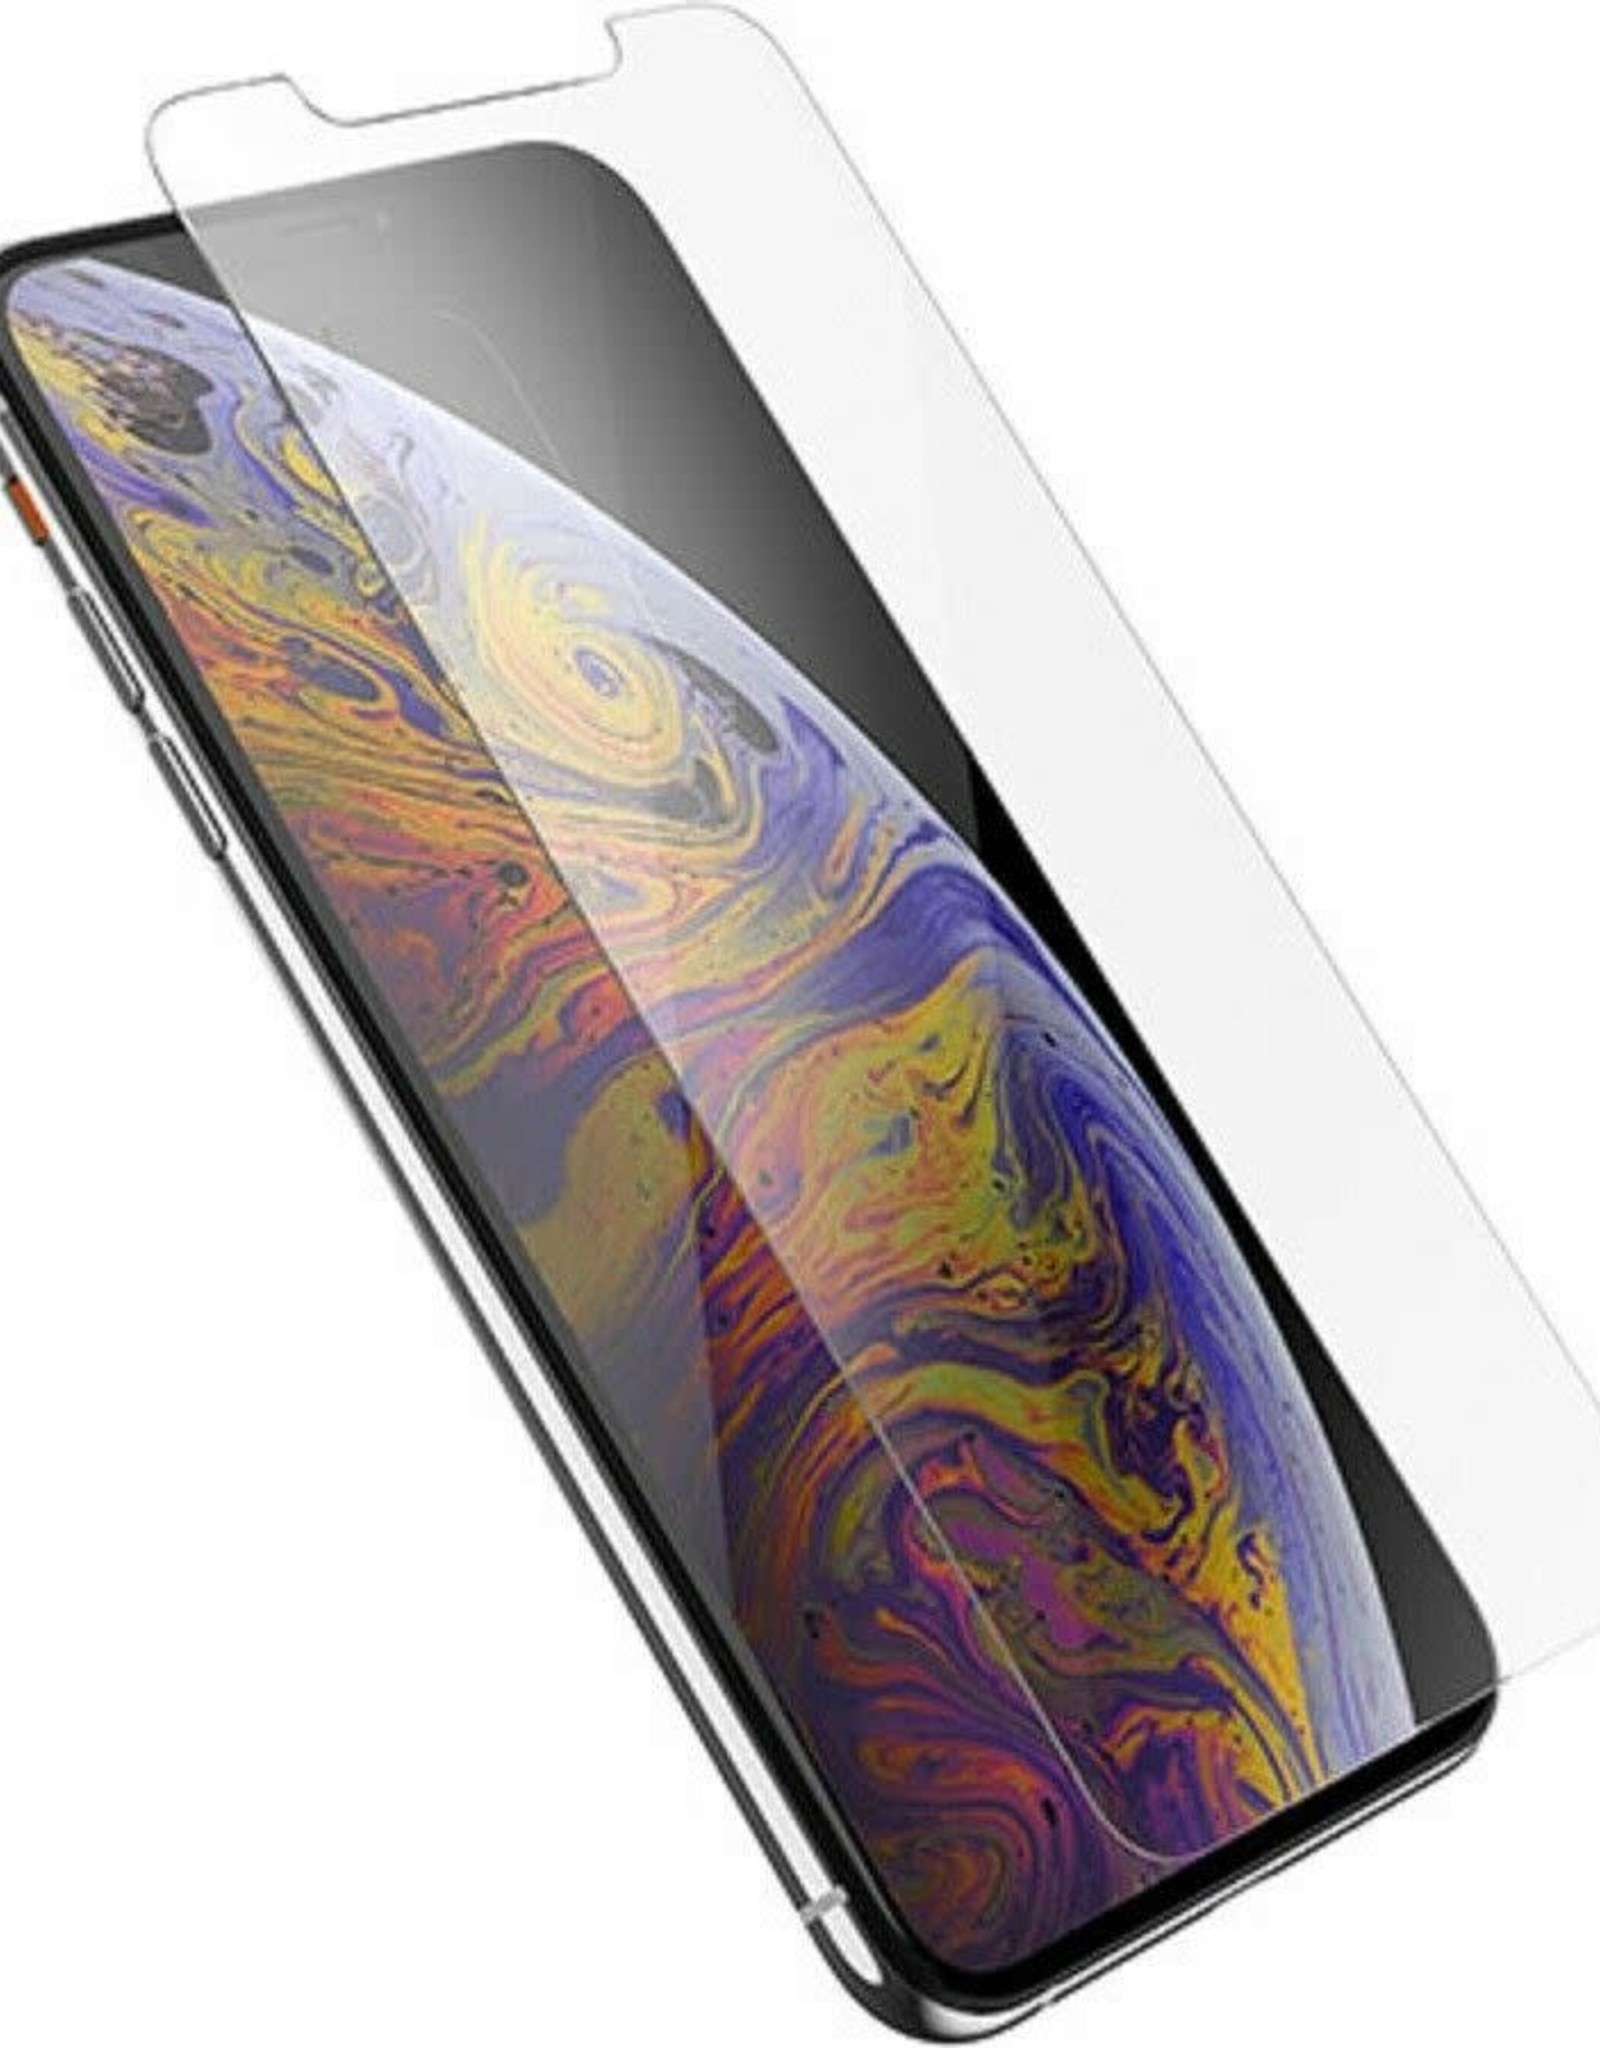 Otterbox Otterbox   Amplify Screen Protector iPhone XS/X/11 Pro 118-2106